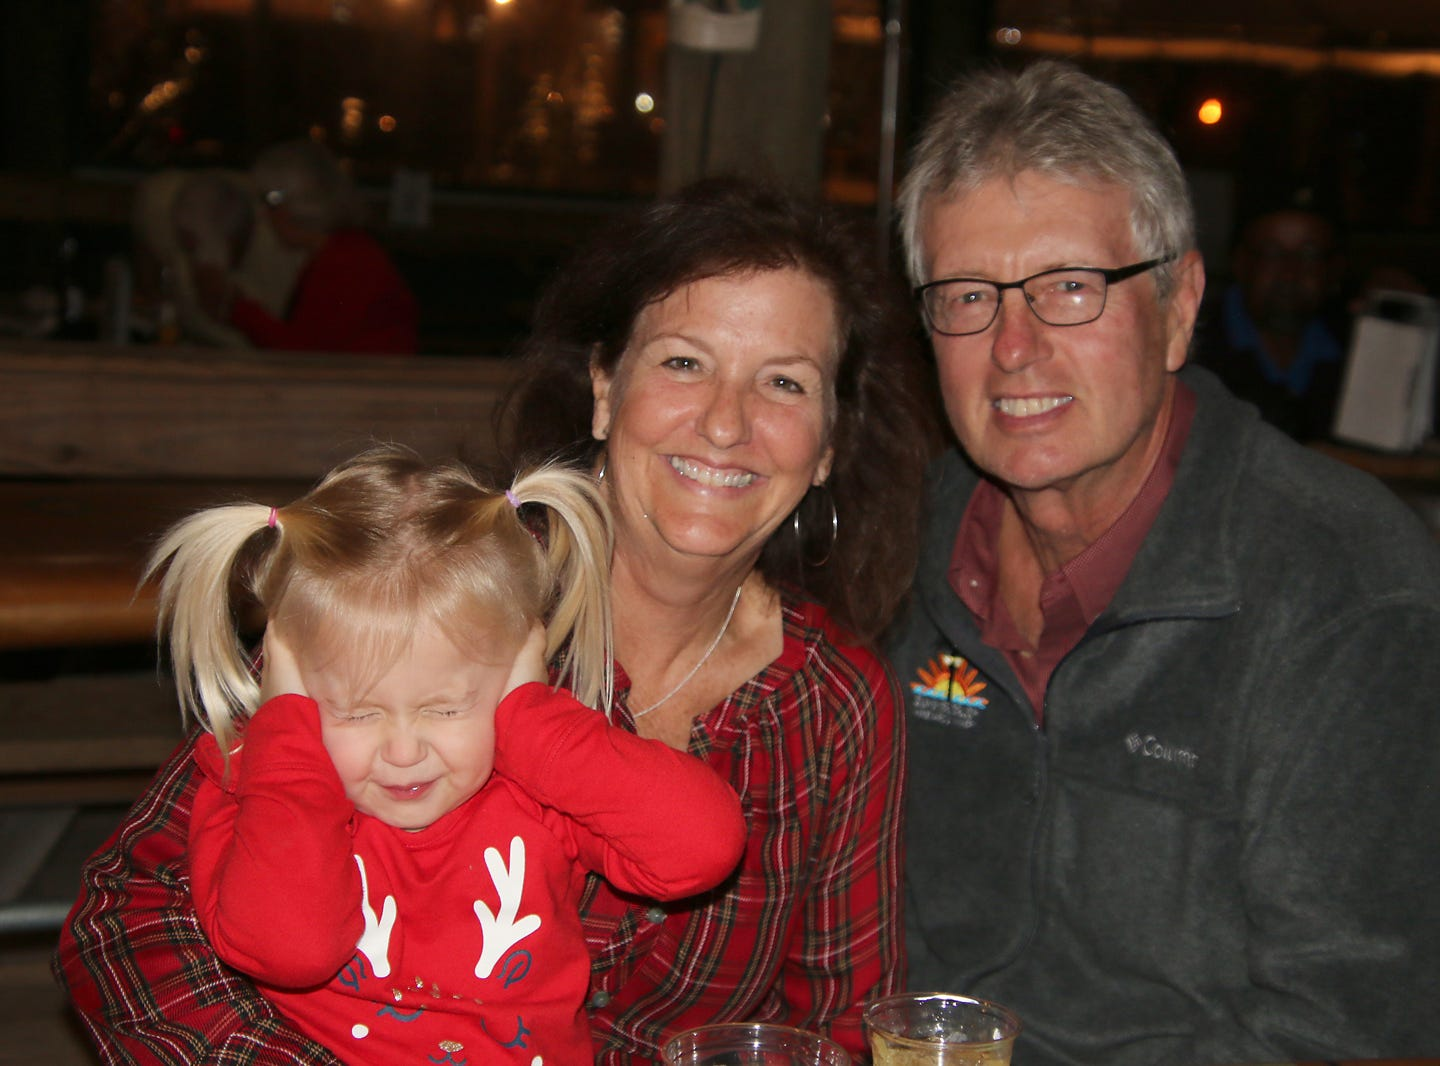 Summer Crush owners Gary and Susan Roberts and their granddaughter, who wasn't quite sure about the music, at the Fort Pierce Jazz &Blues Society's Ring-a-Ding-Ding Holiday Fling at Summer Crush Vineyard & Winery.